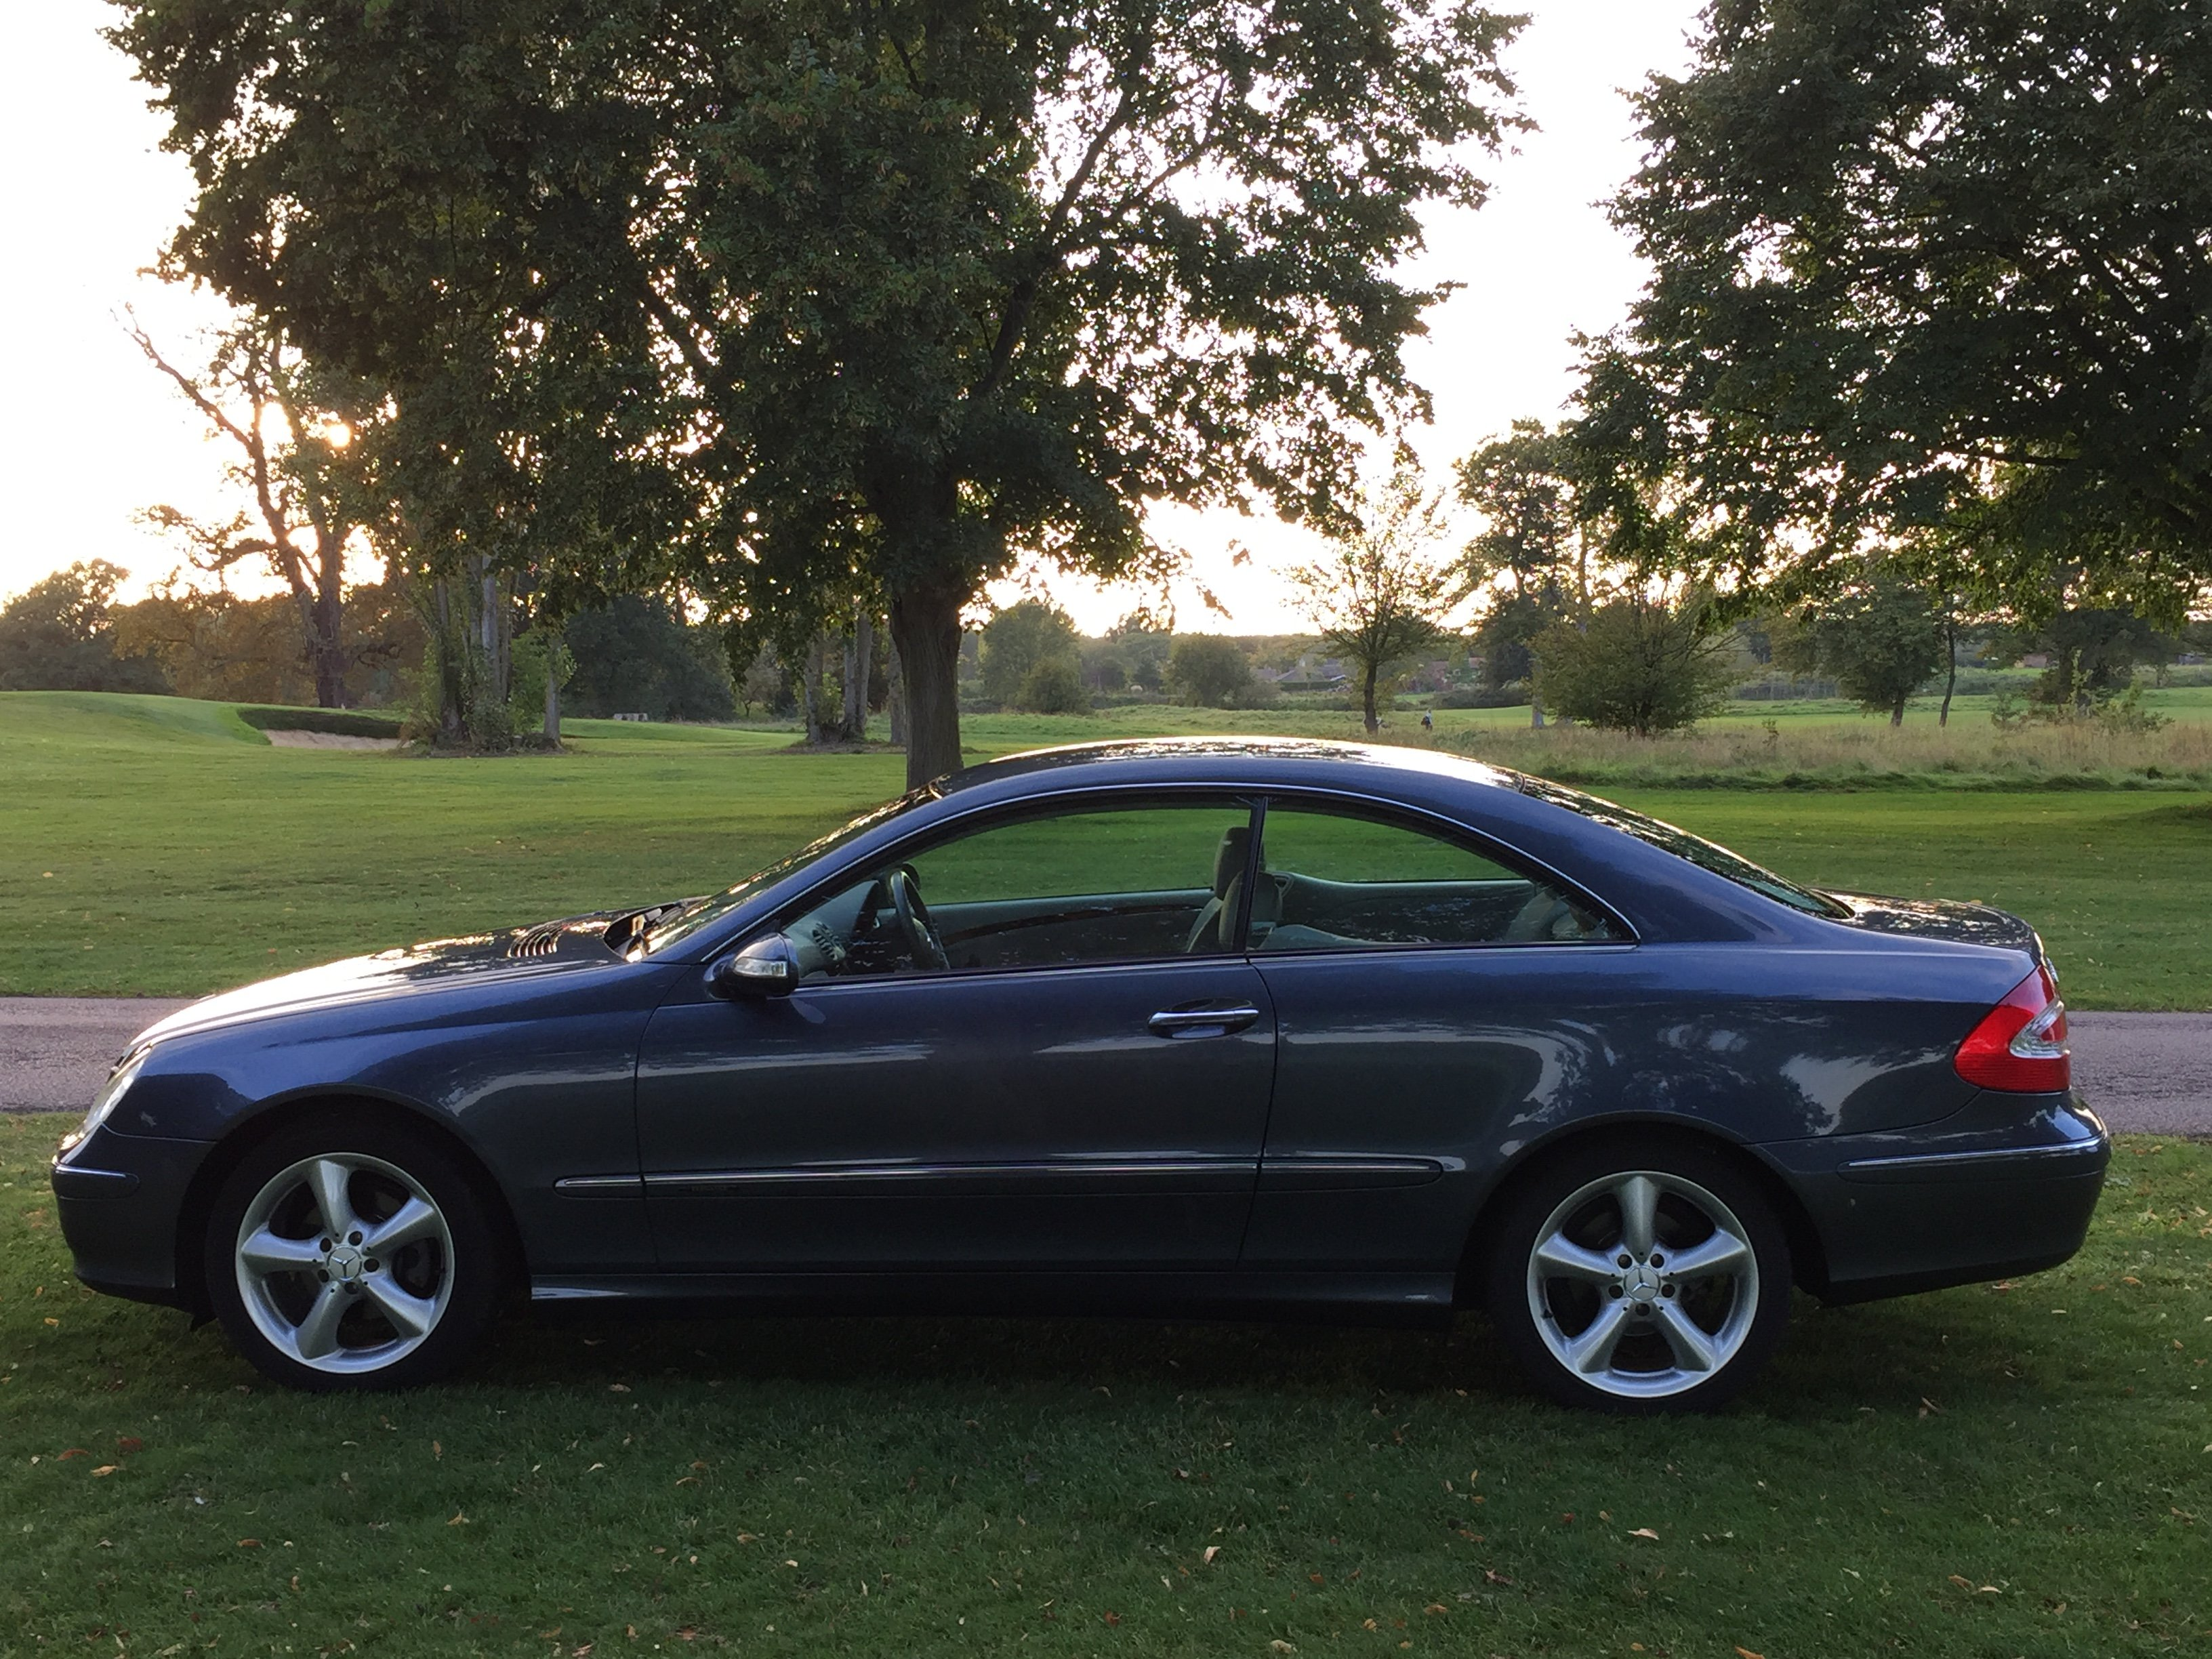 CLK 200 KOMP LEATHER  AUTOMATIC 29,303 miles FSH IMMACULATE